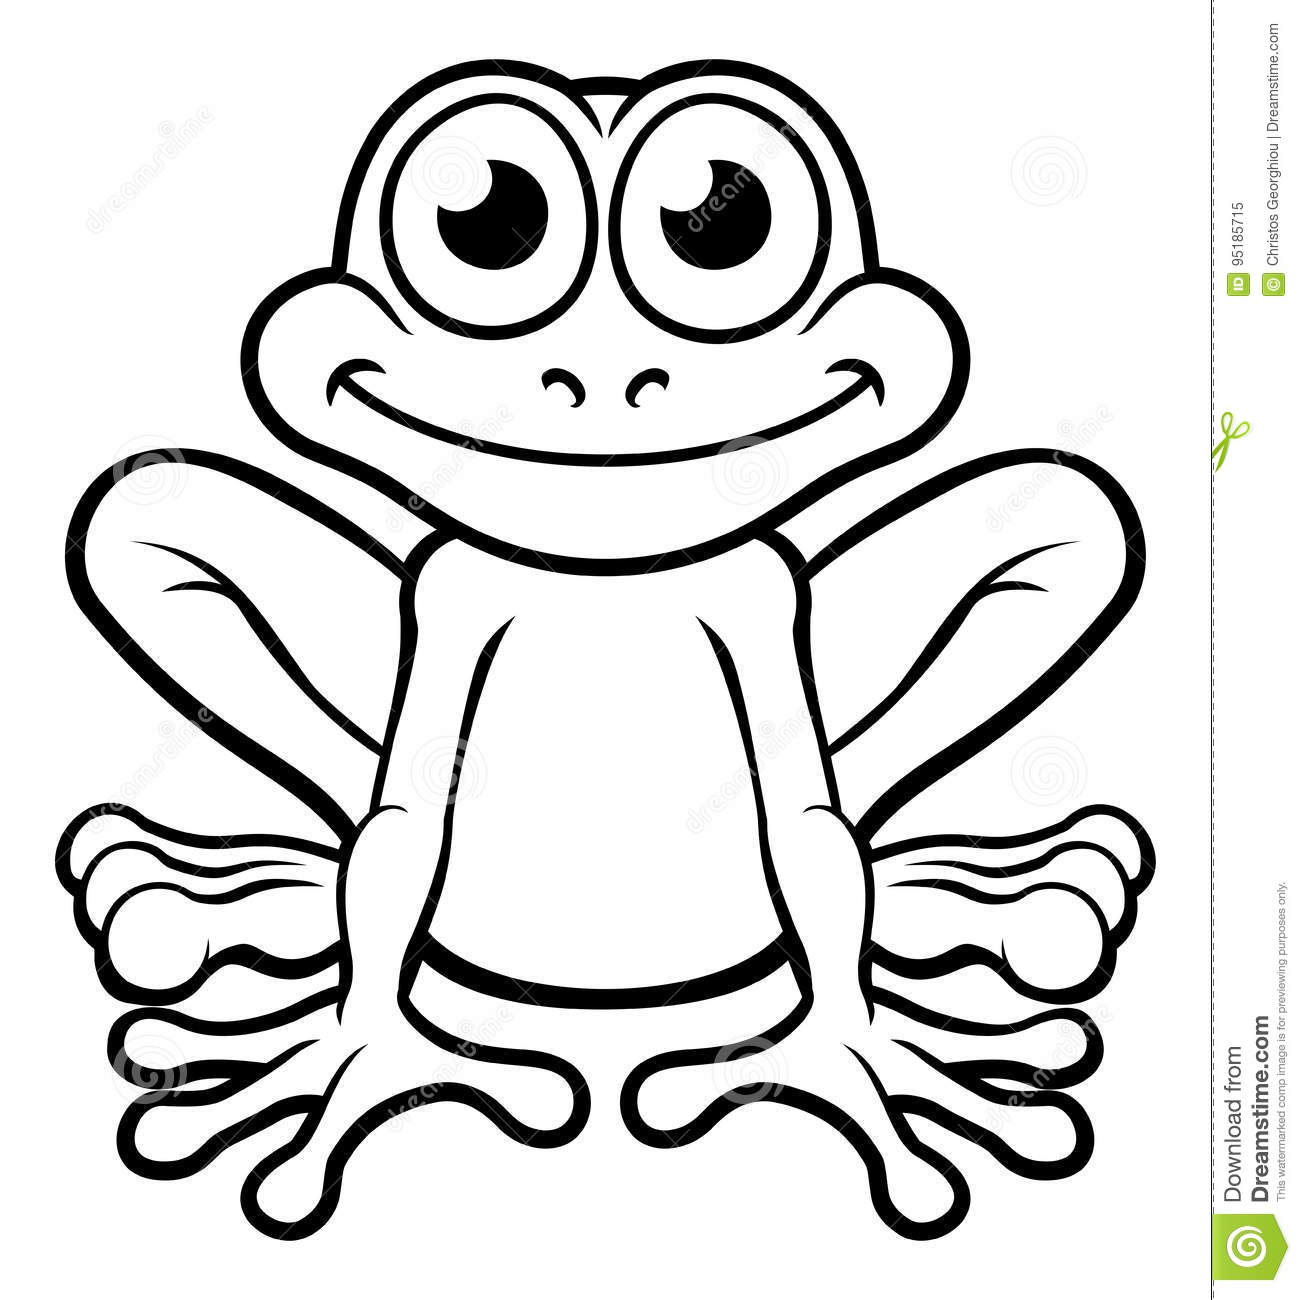 Cartoon Characters Outline : Frog cartoon character stock vector illustration of clip